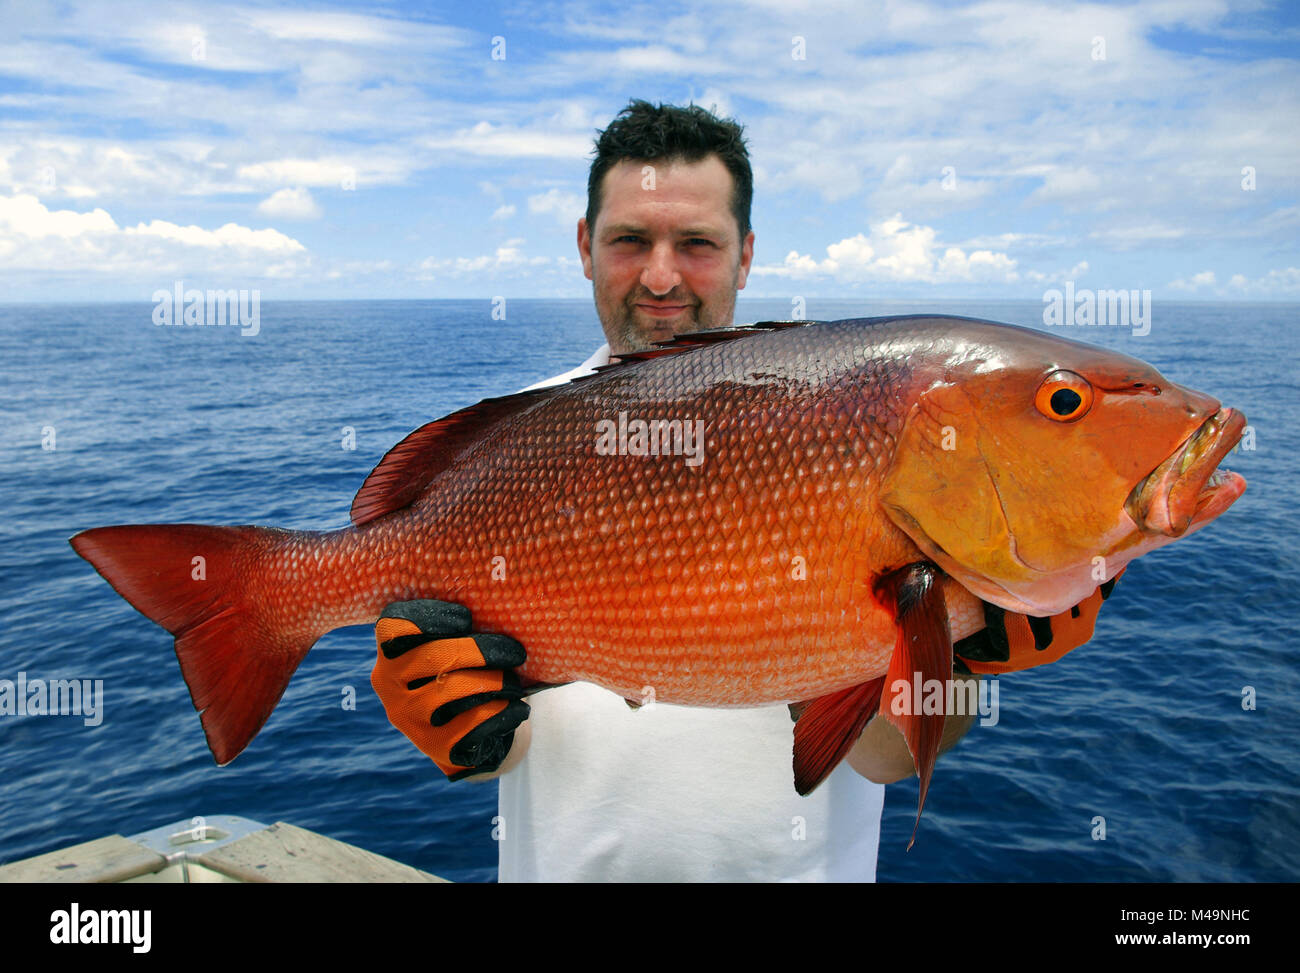 Lucky  fisherman holding a beautiful red snapper. Deep sea fishing, big game fishing, catch of fish. Stock Photo